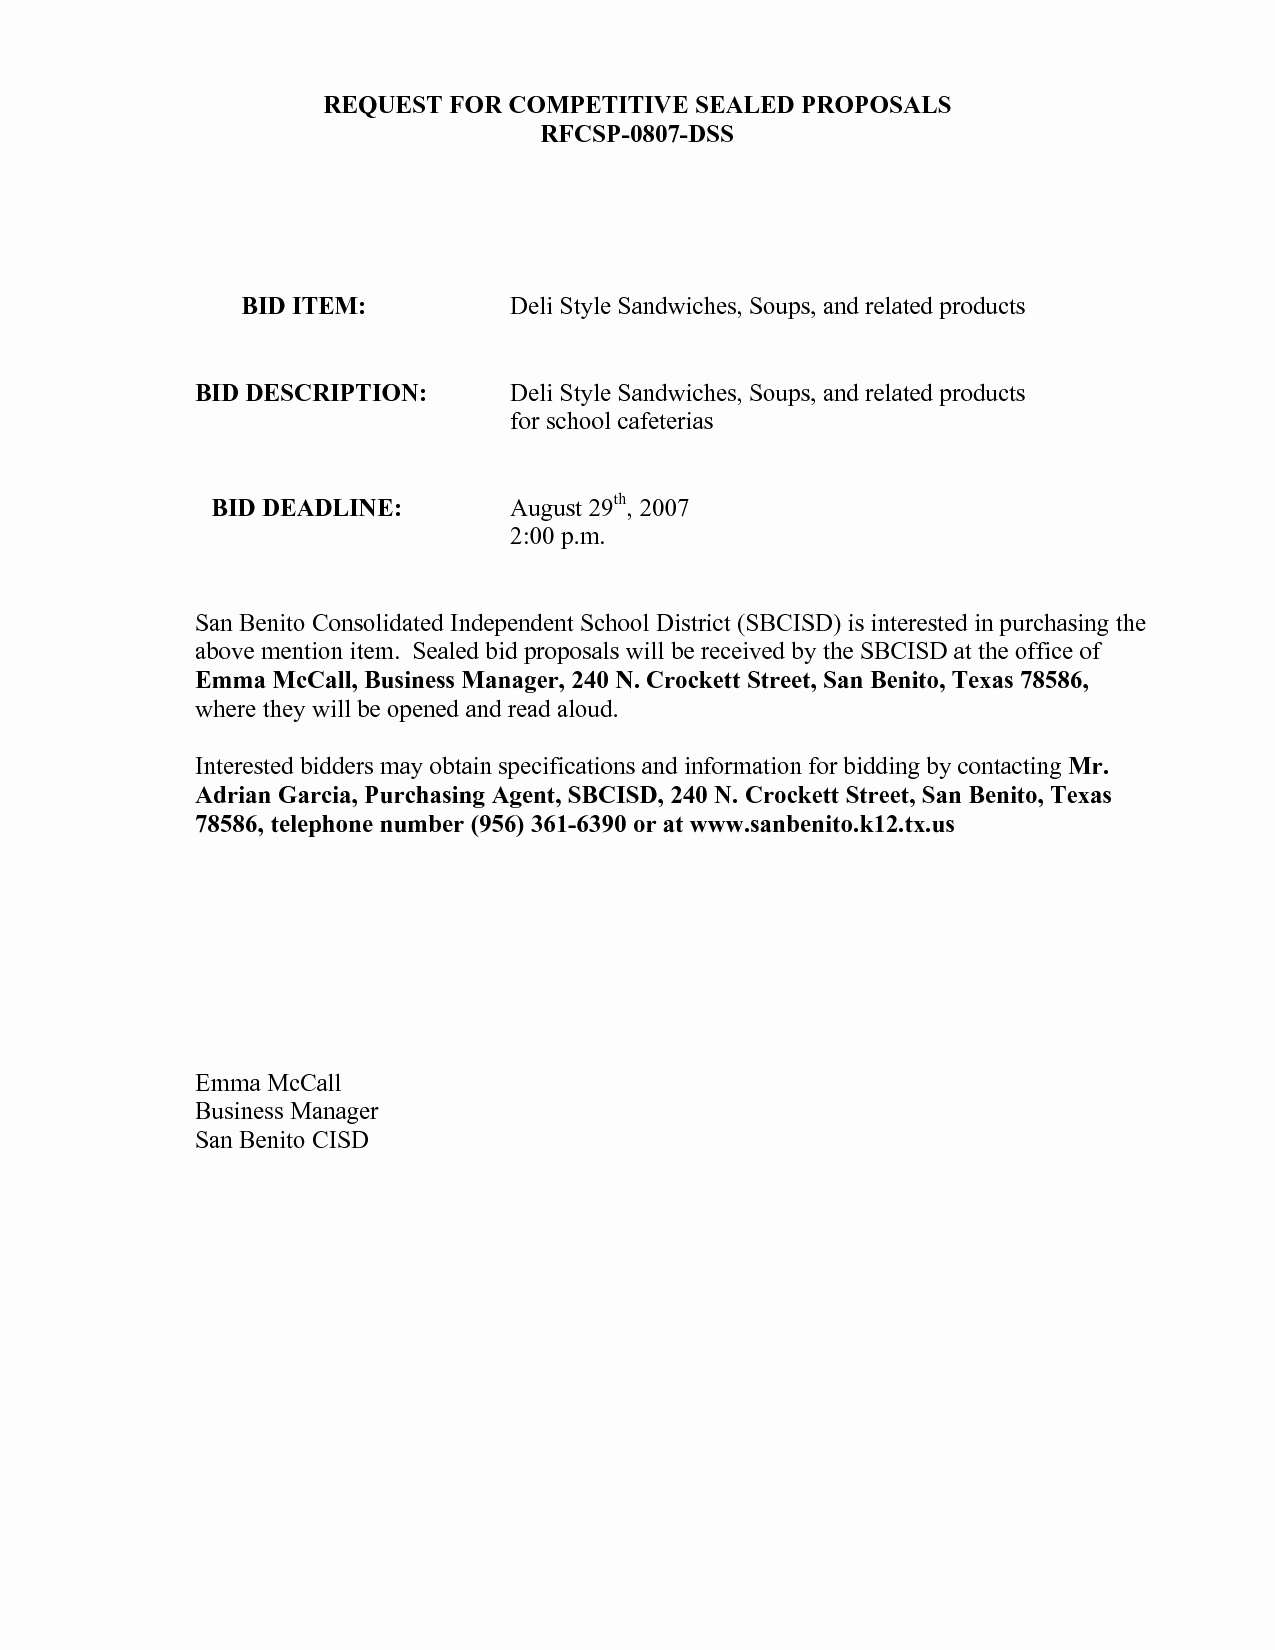 Request for Proposal Rejection Letter Awesome Best S Of Vendor Proposal Rejection Letter Rfp